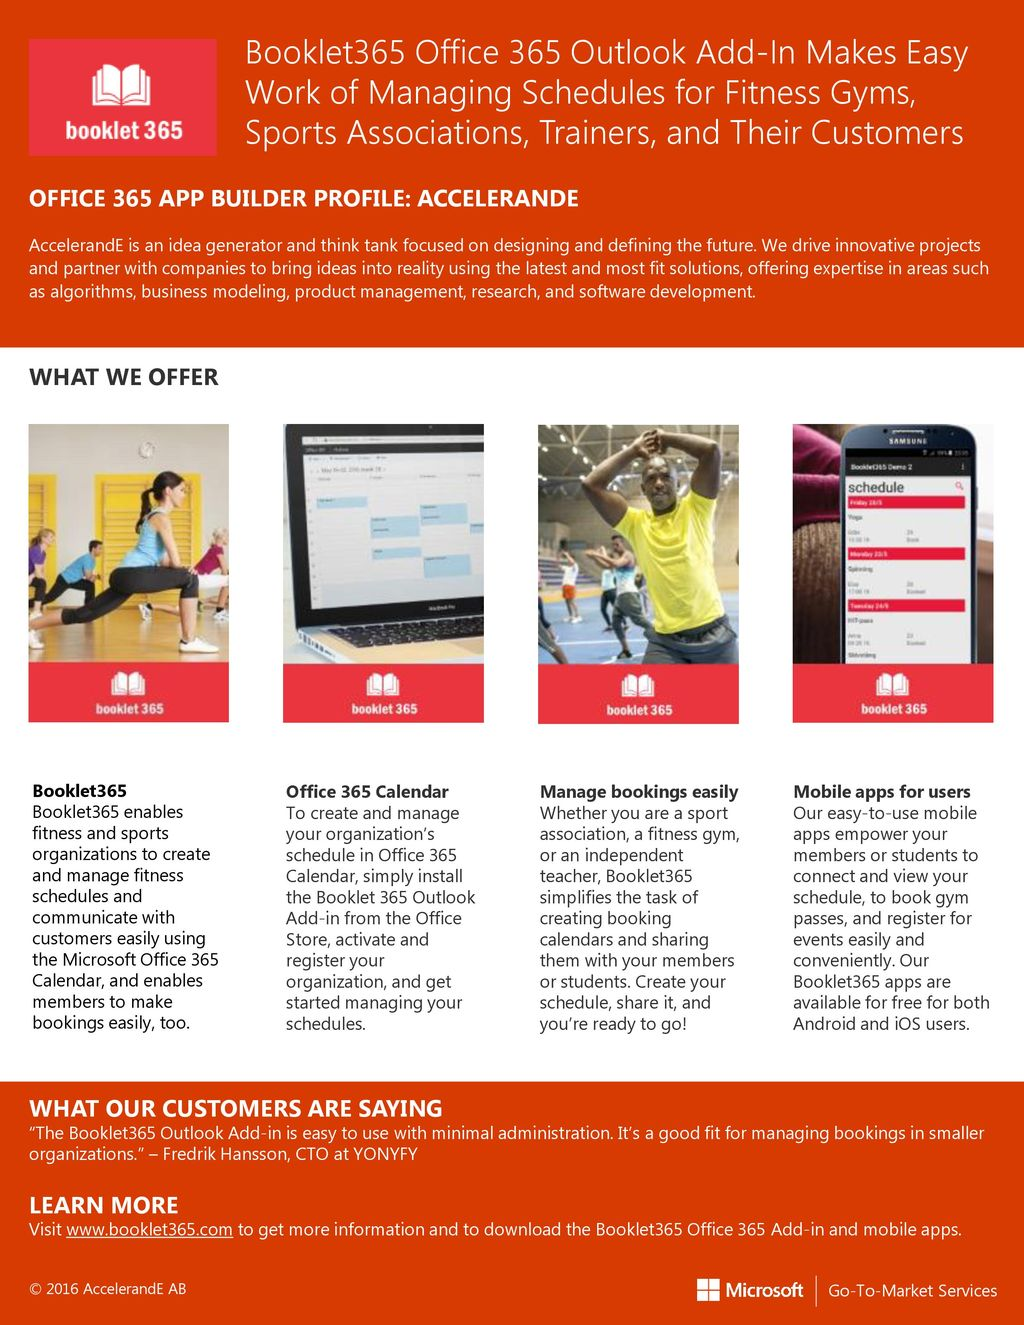 Booklet365 Office 365 Outlook Add-In Makes Easy Work of